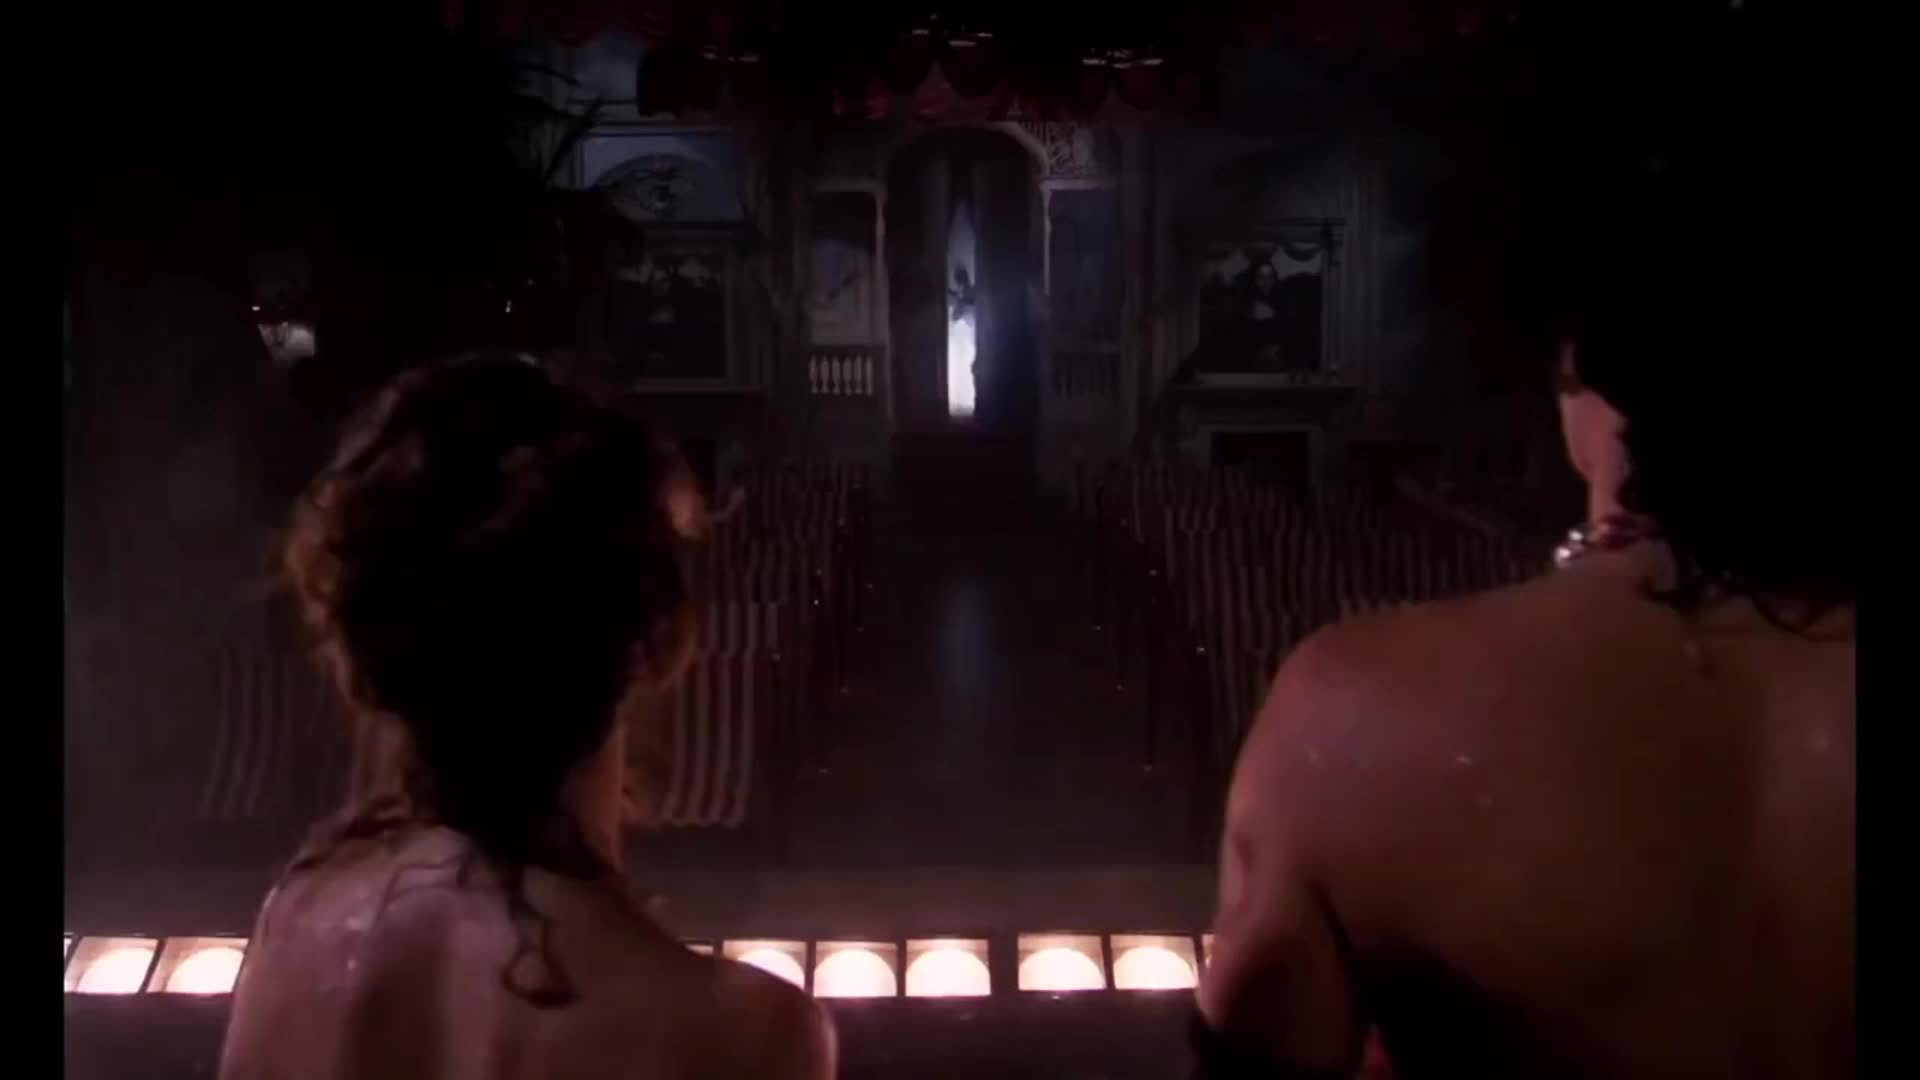 Frank N' Furter, It's all over, RiffRaff, RockyHorror, Best Entrance NA GIFs